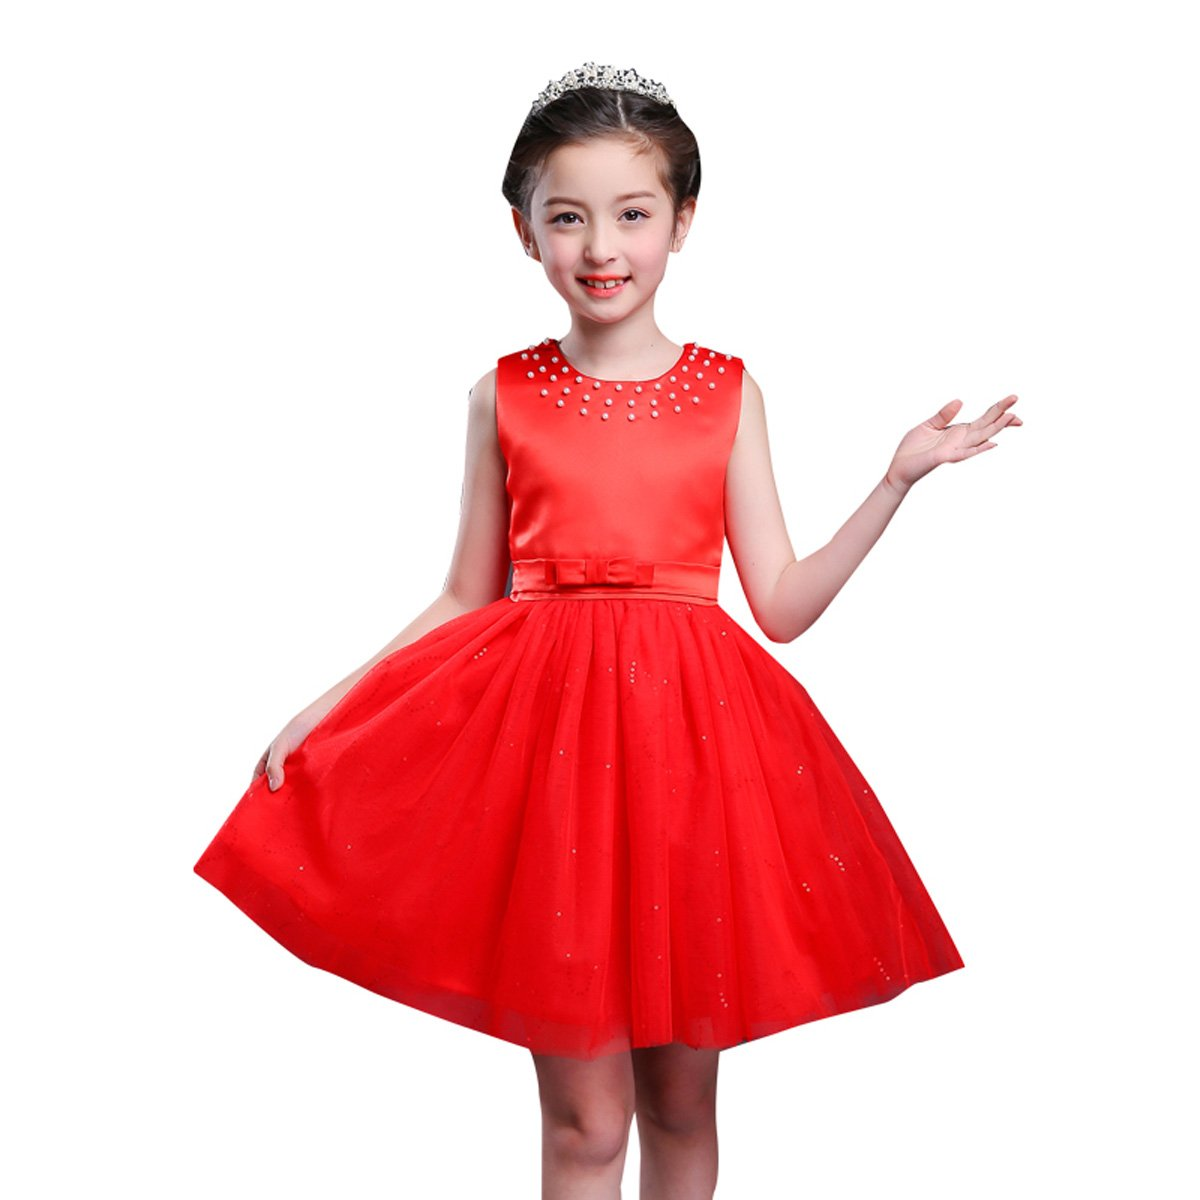 Strict Beautiful Girls Sleeveless Satin Bowknot Swing Ruffles Flower Girl Dress Stylish Princess Kids Girls Wedding Party Dress Sz 4-14 Carefully Selected Materials Flower Girl Dresses